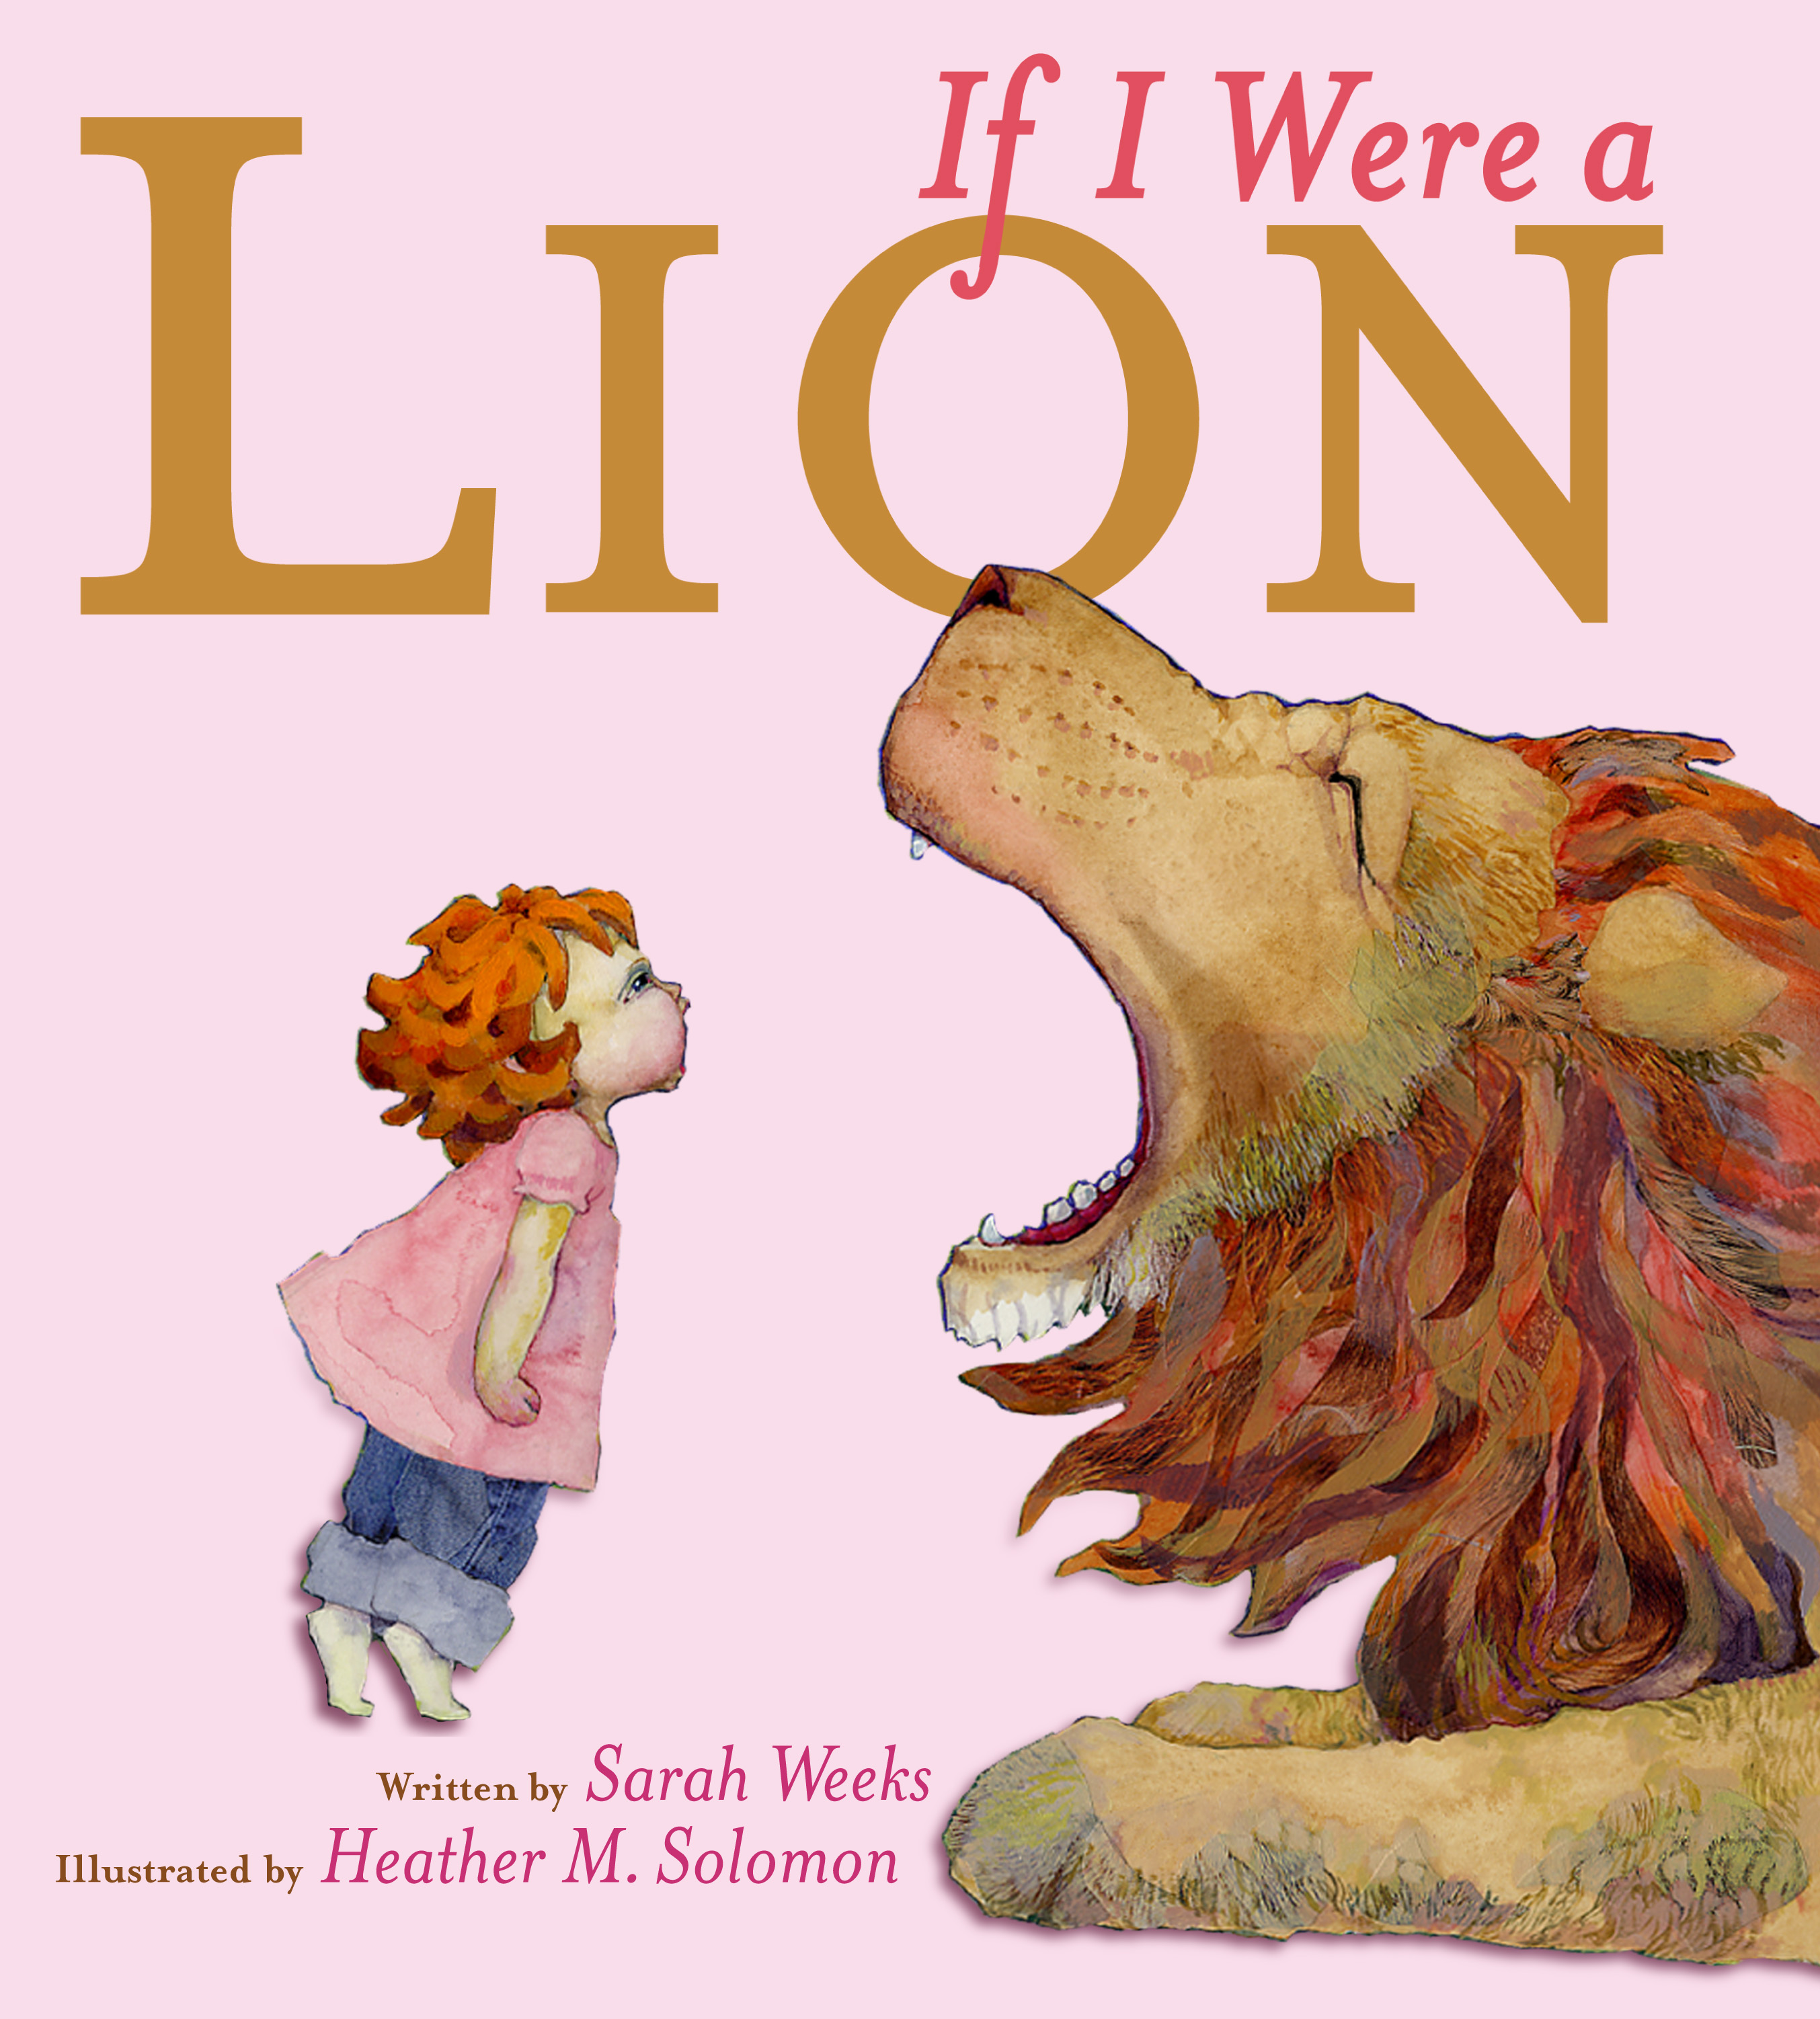 if i were a lion book by sarah weeks heather m solomon